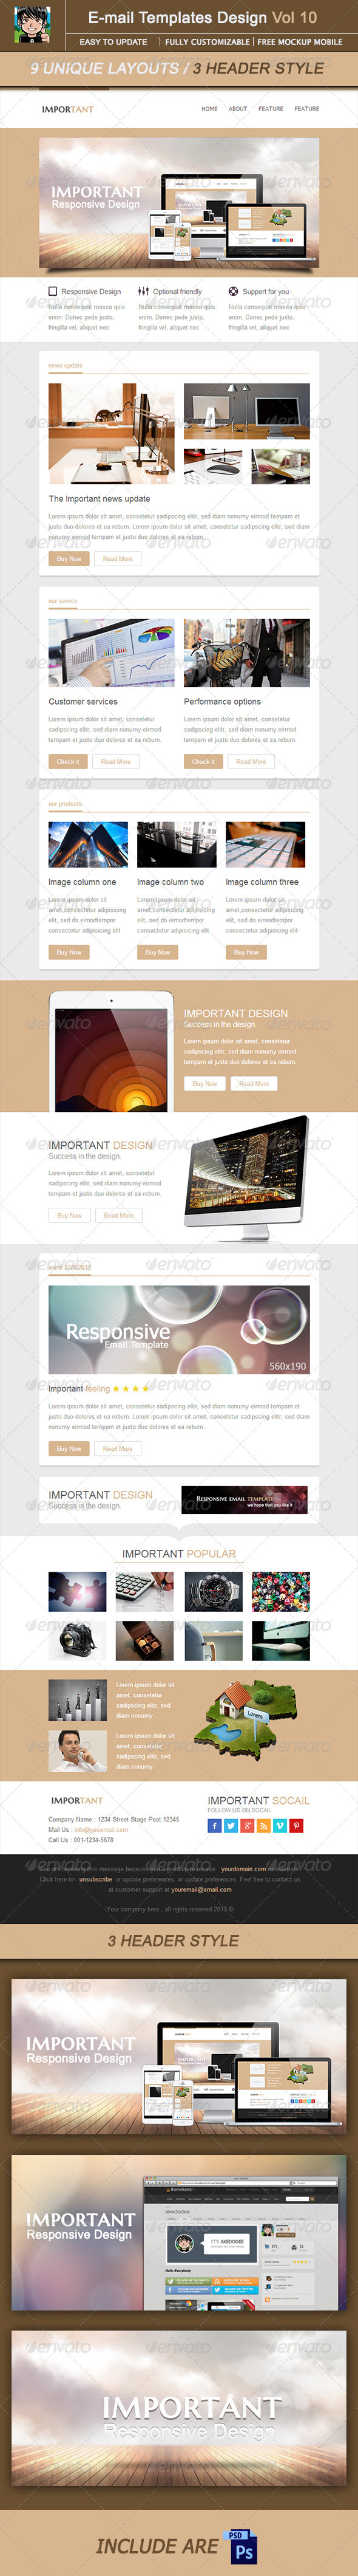 IMPORTANT-Email Template Design Vol 10 - E-newsletters Web Elements